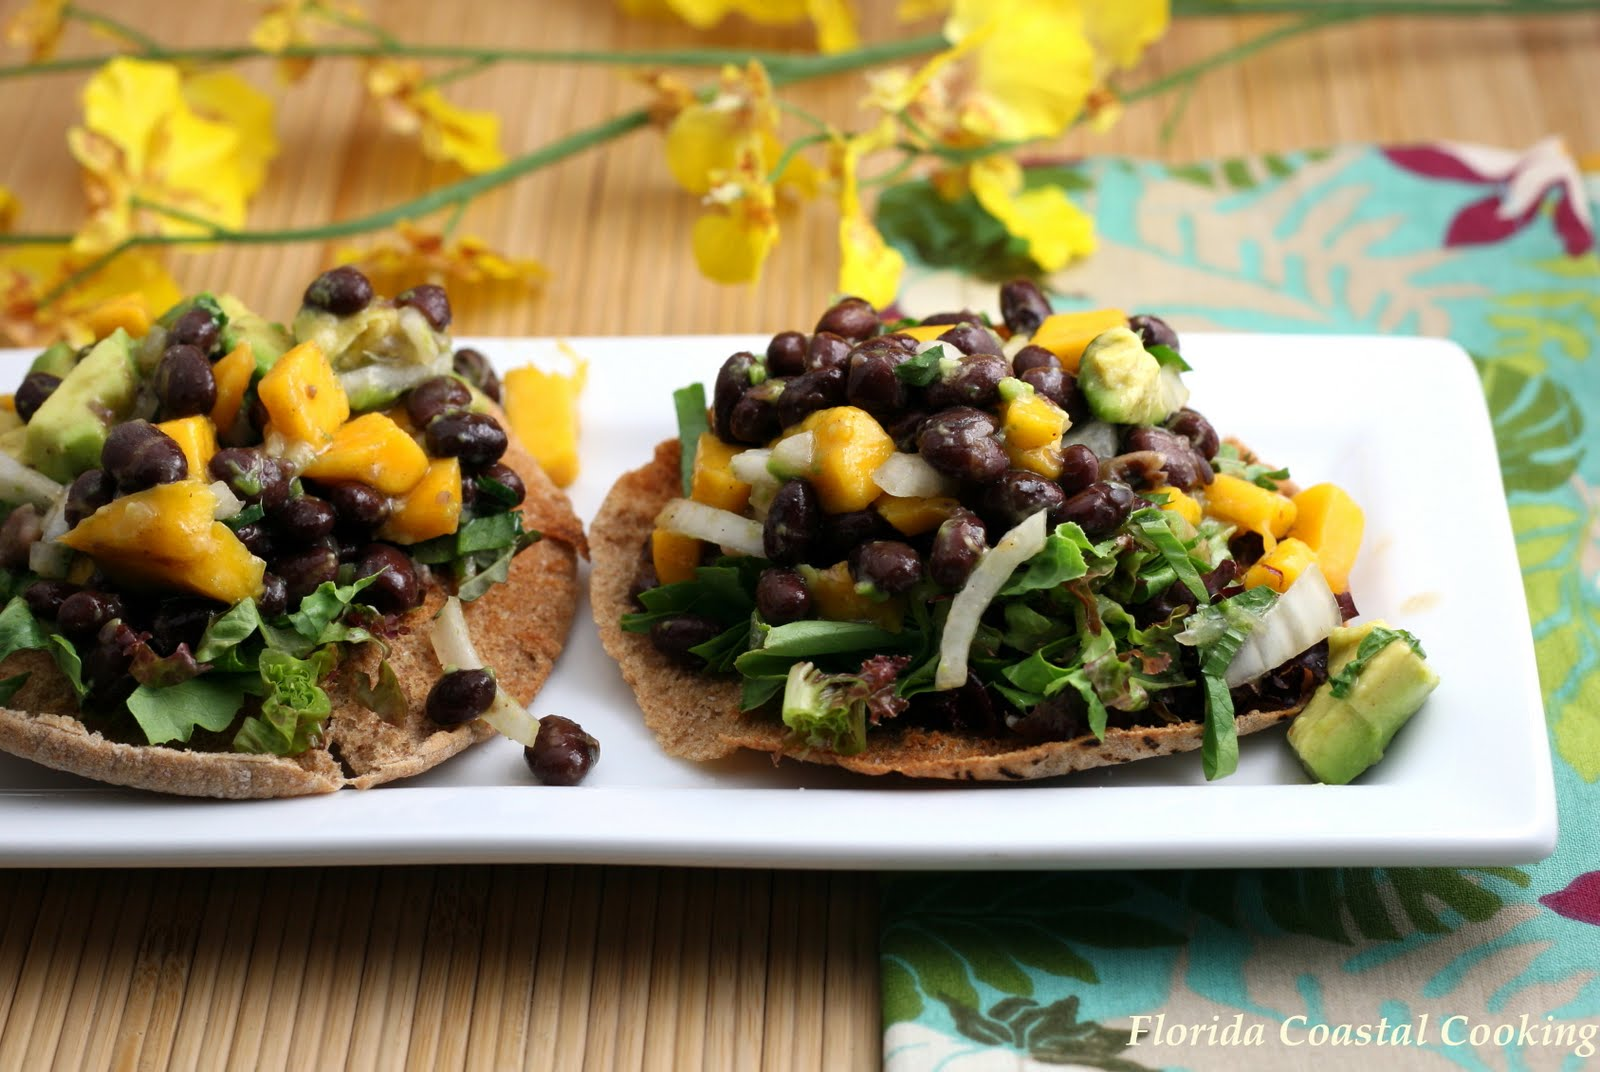 Avocado, Mango and Caribbean Black Bean Tostada - Coastal Cooking